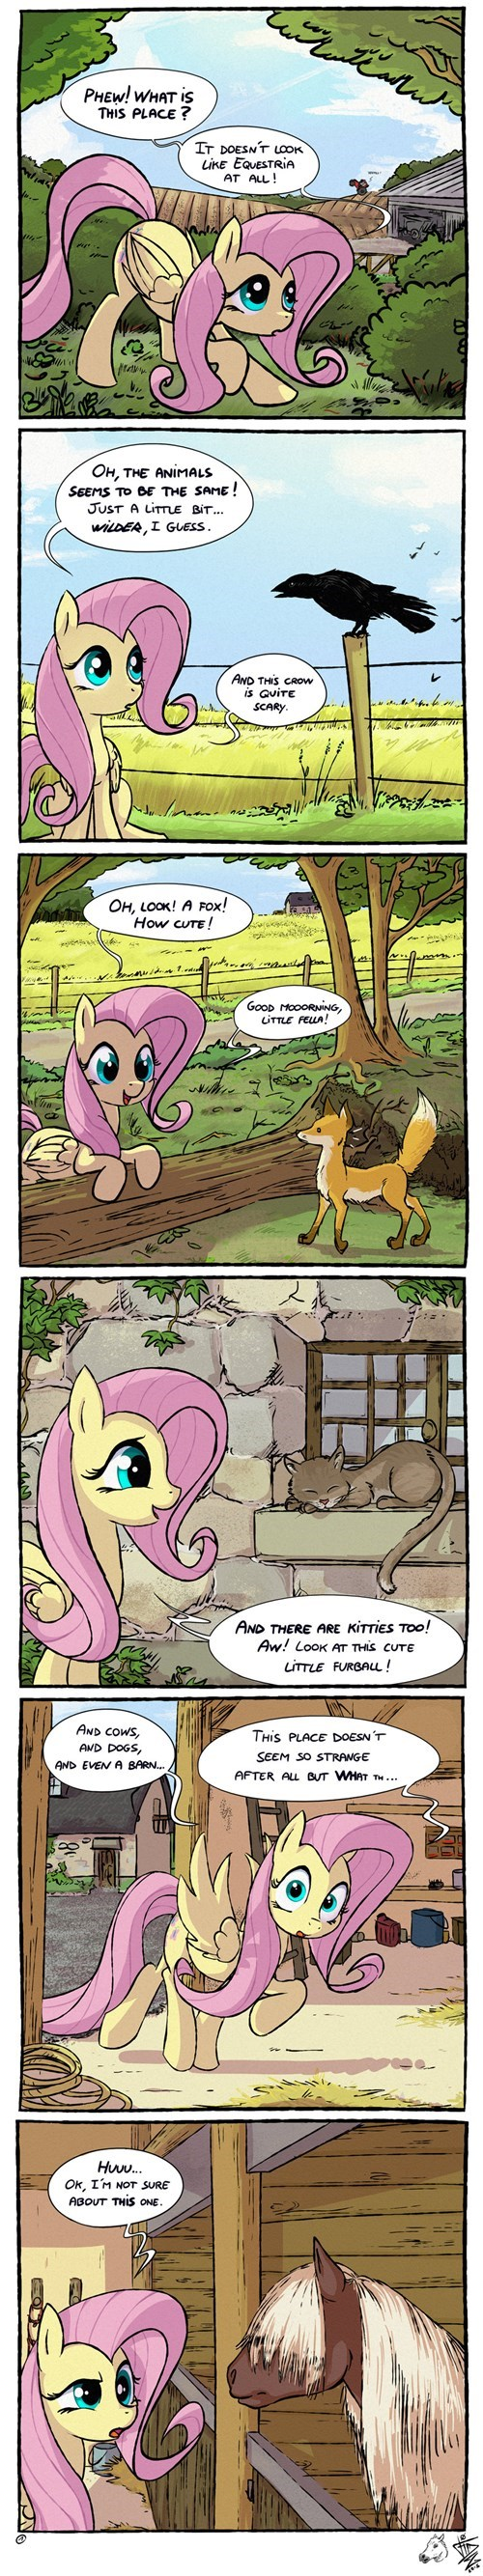 my-little-brony-fluttershy-animals-real-world